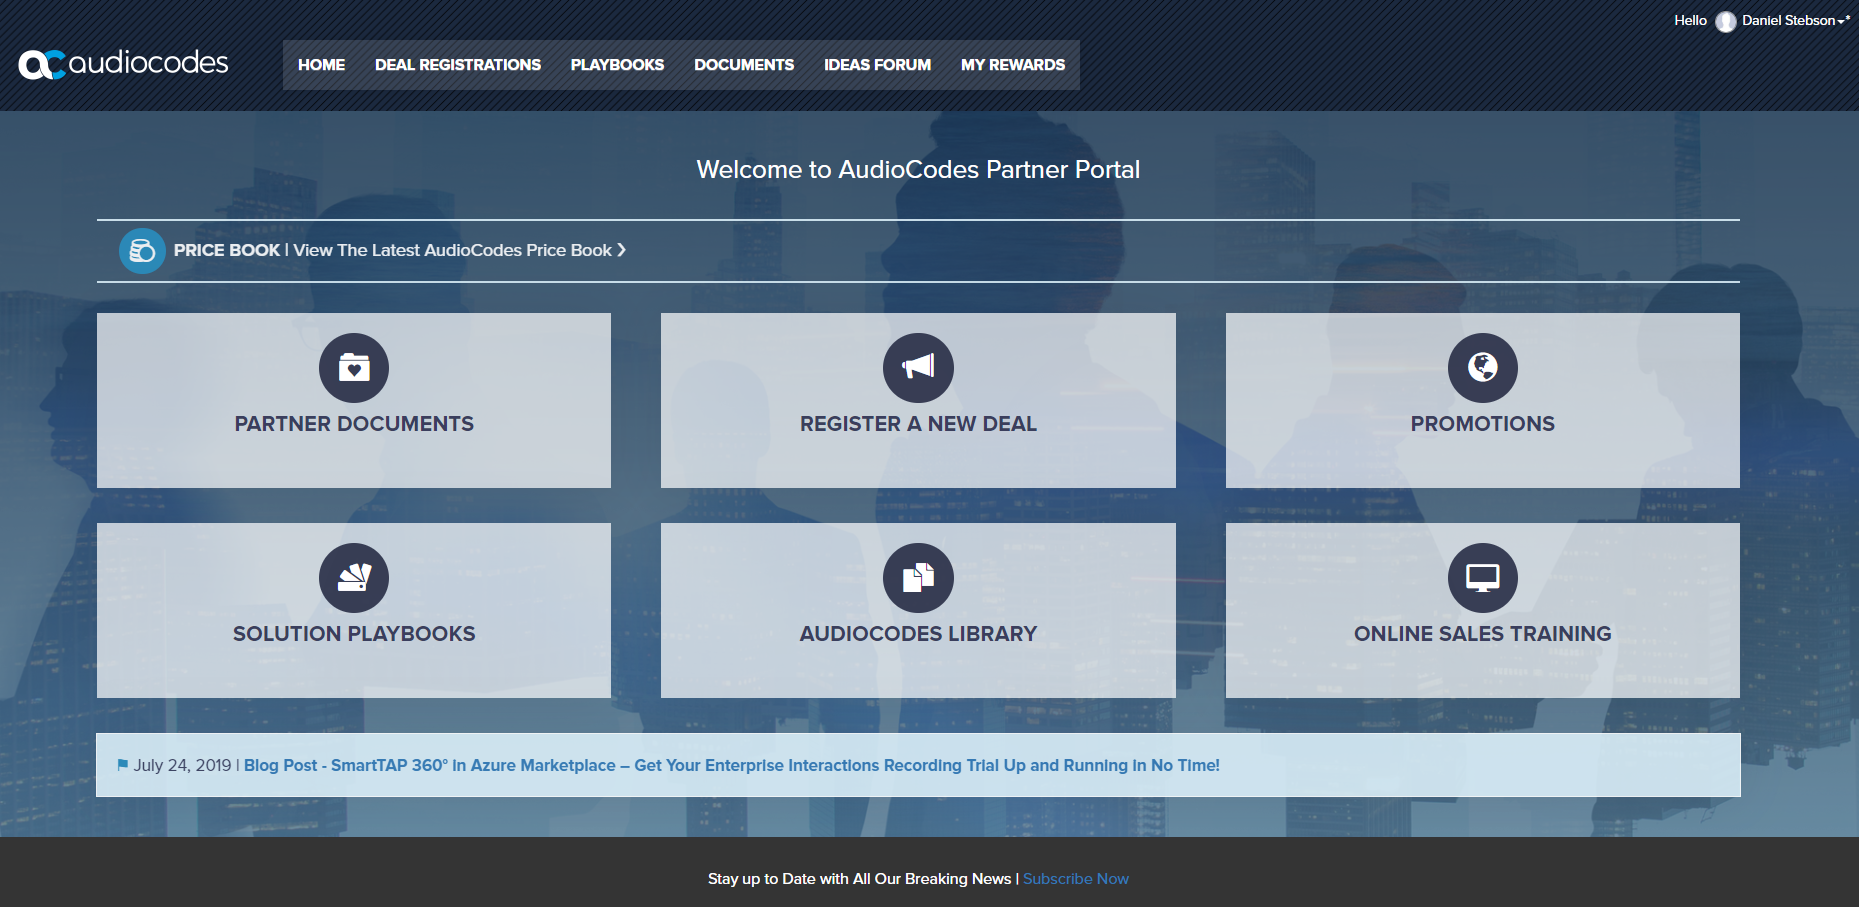 Need 1000+ Users In Your Partner Portal? The AudioCodes Story